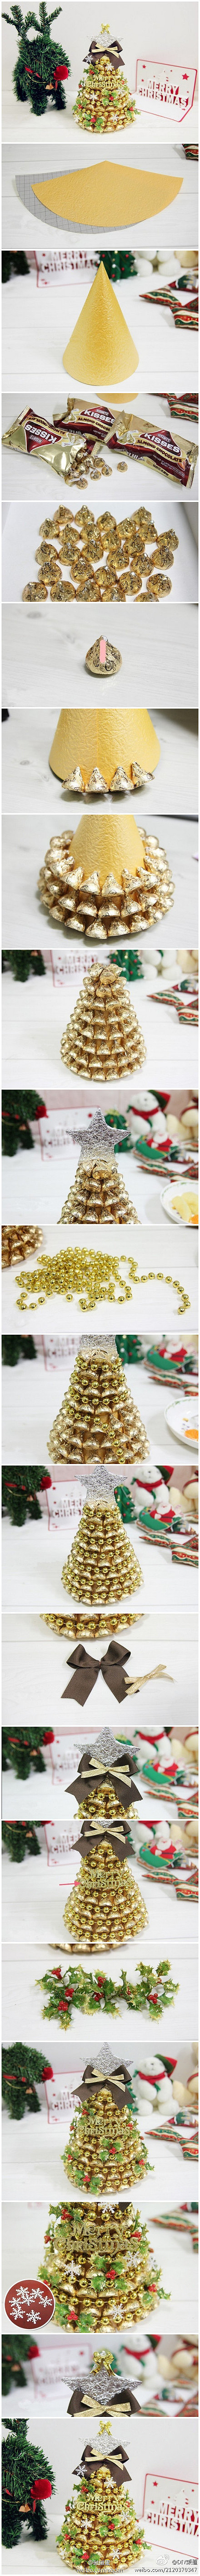 How to make cute Chocolate Christmas tree decorations step by step DIY tutorial instructions